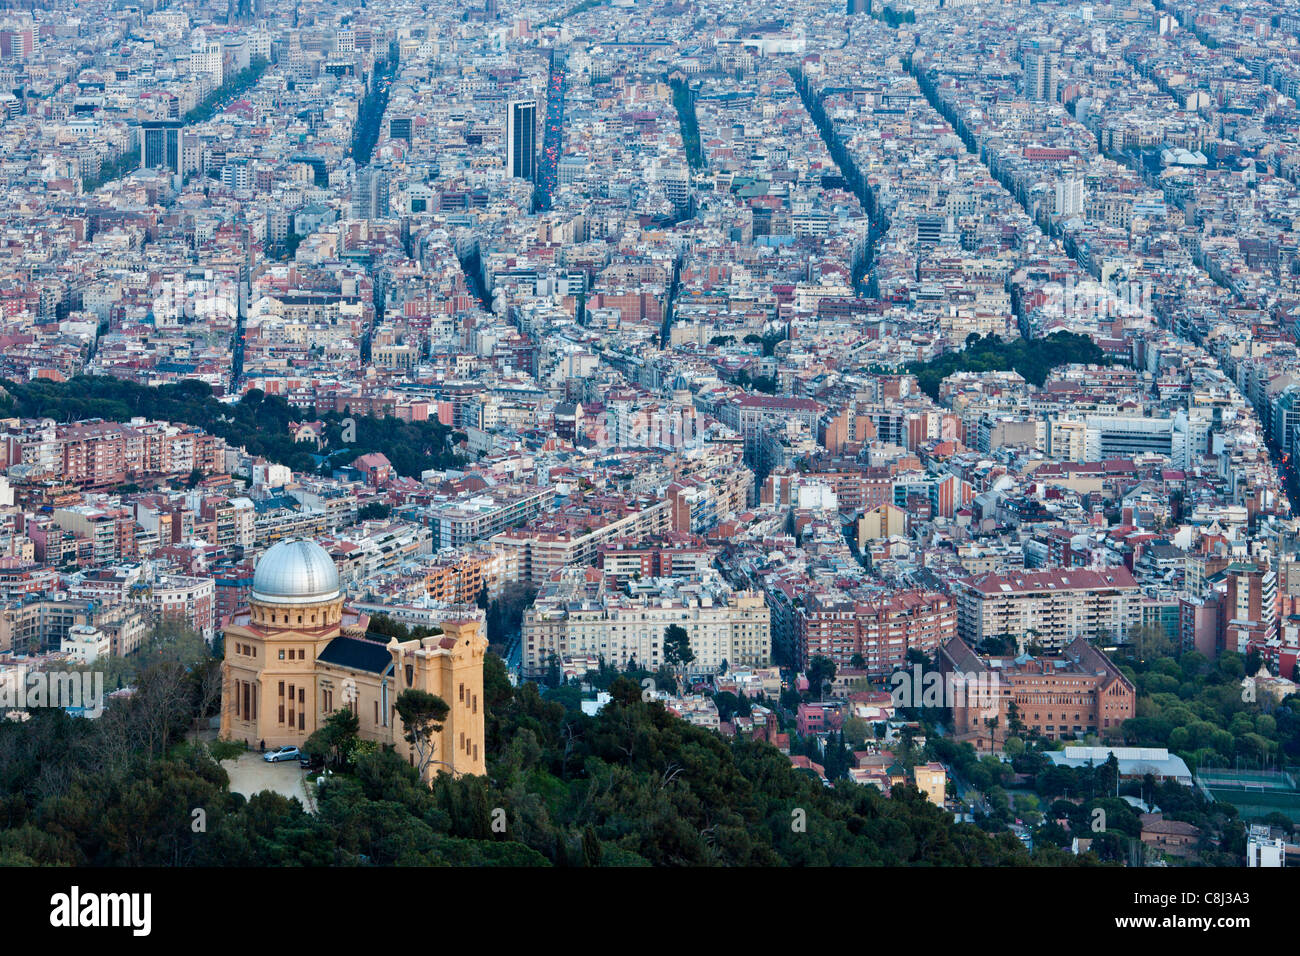 Spain, Europe, Catalunya, Barcelona, city, overview, from Tibidabo, Mountain, observatory - Stock Image